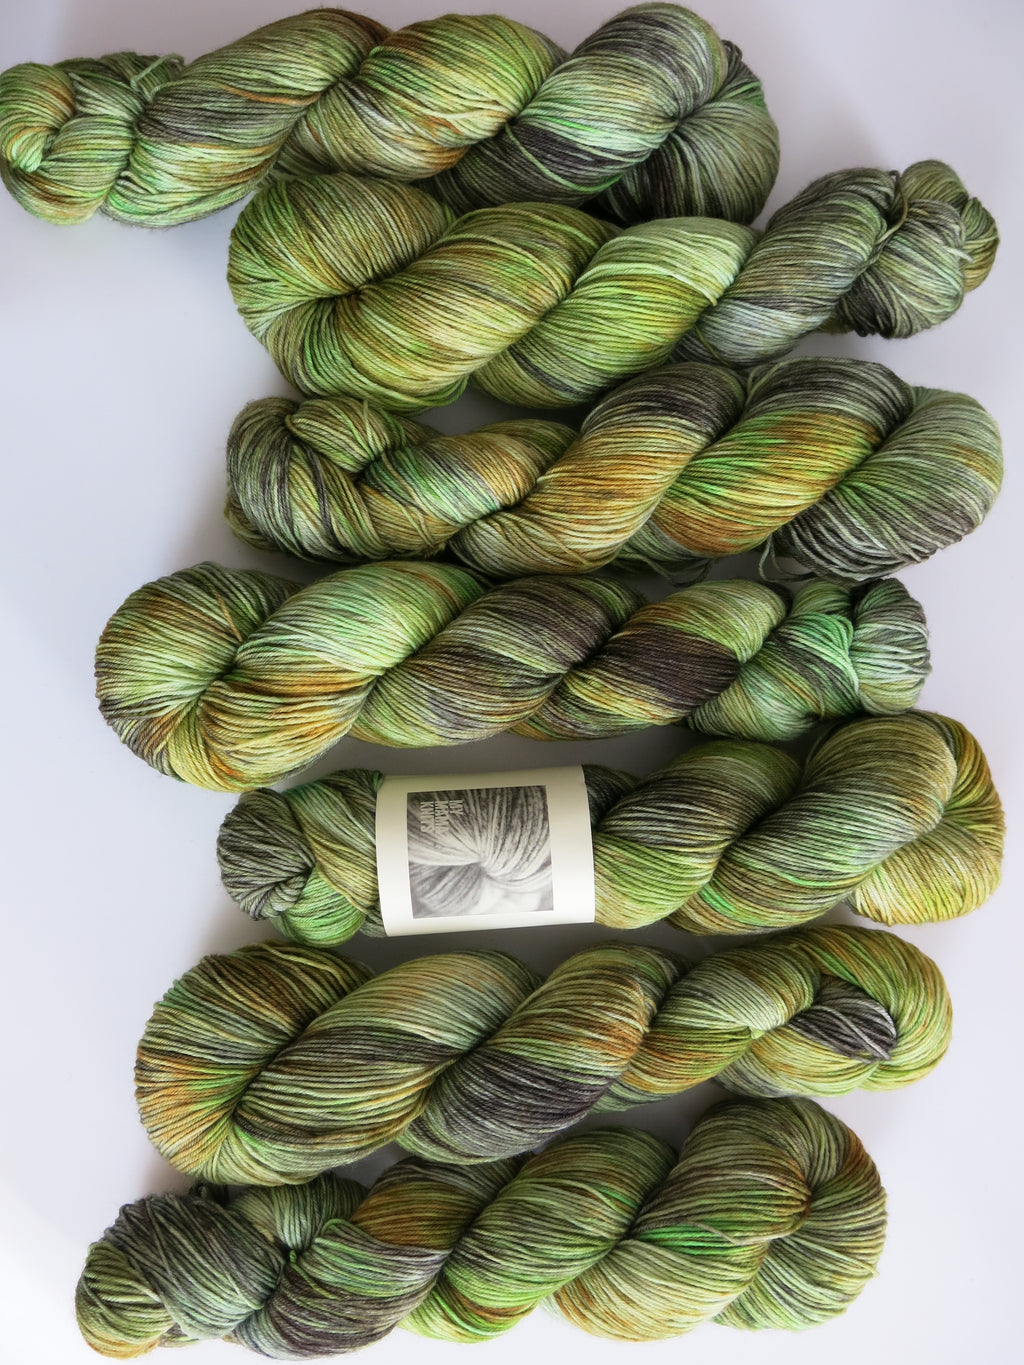 indie dyed 100g merino and nylon sock yarn skeins